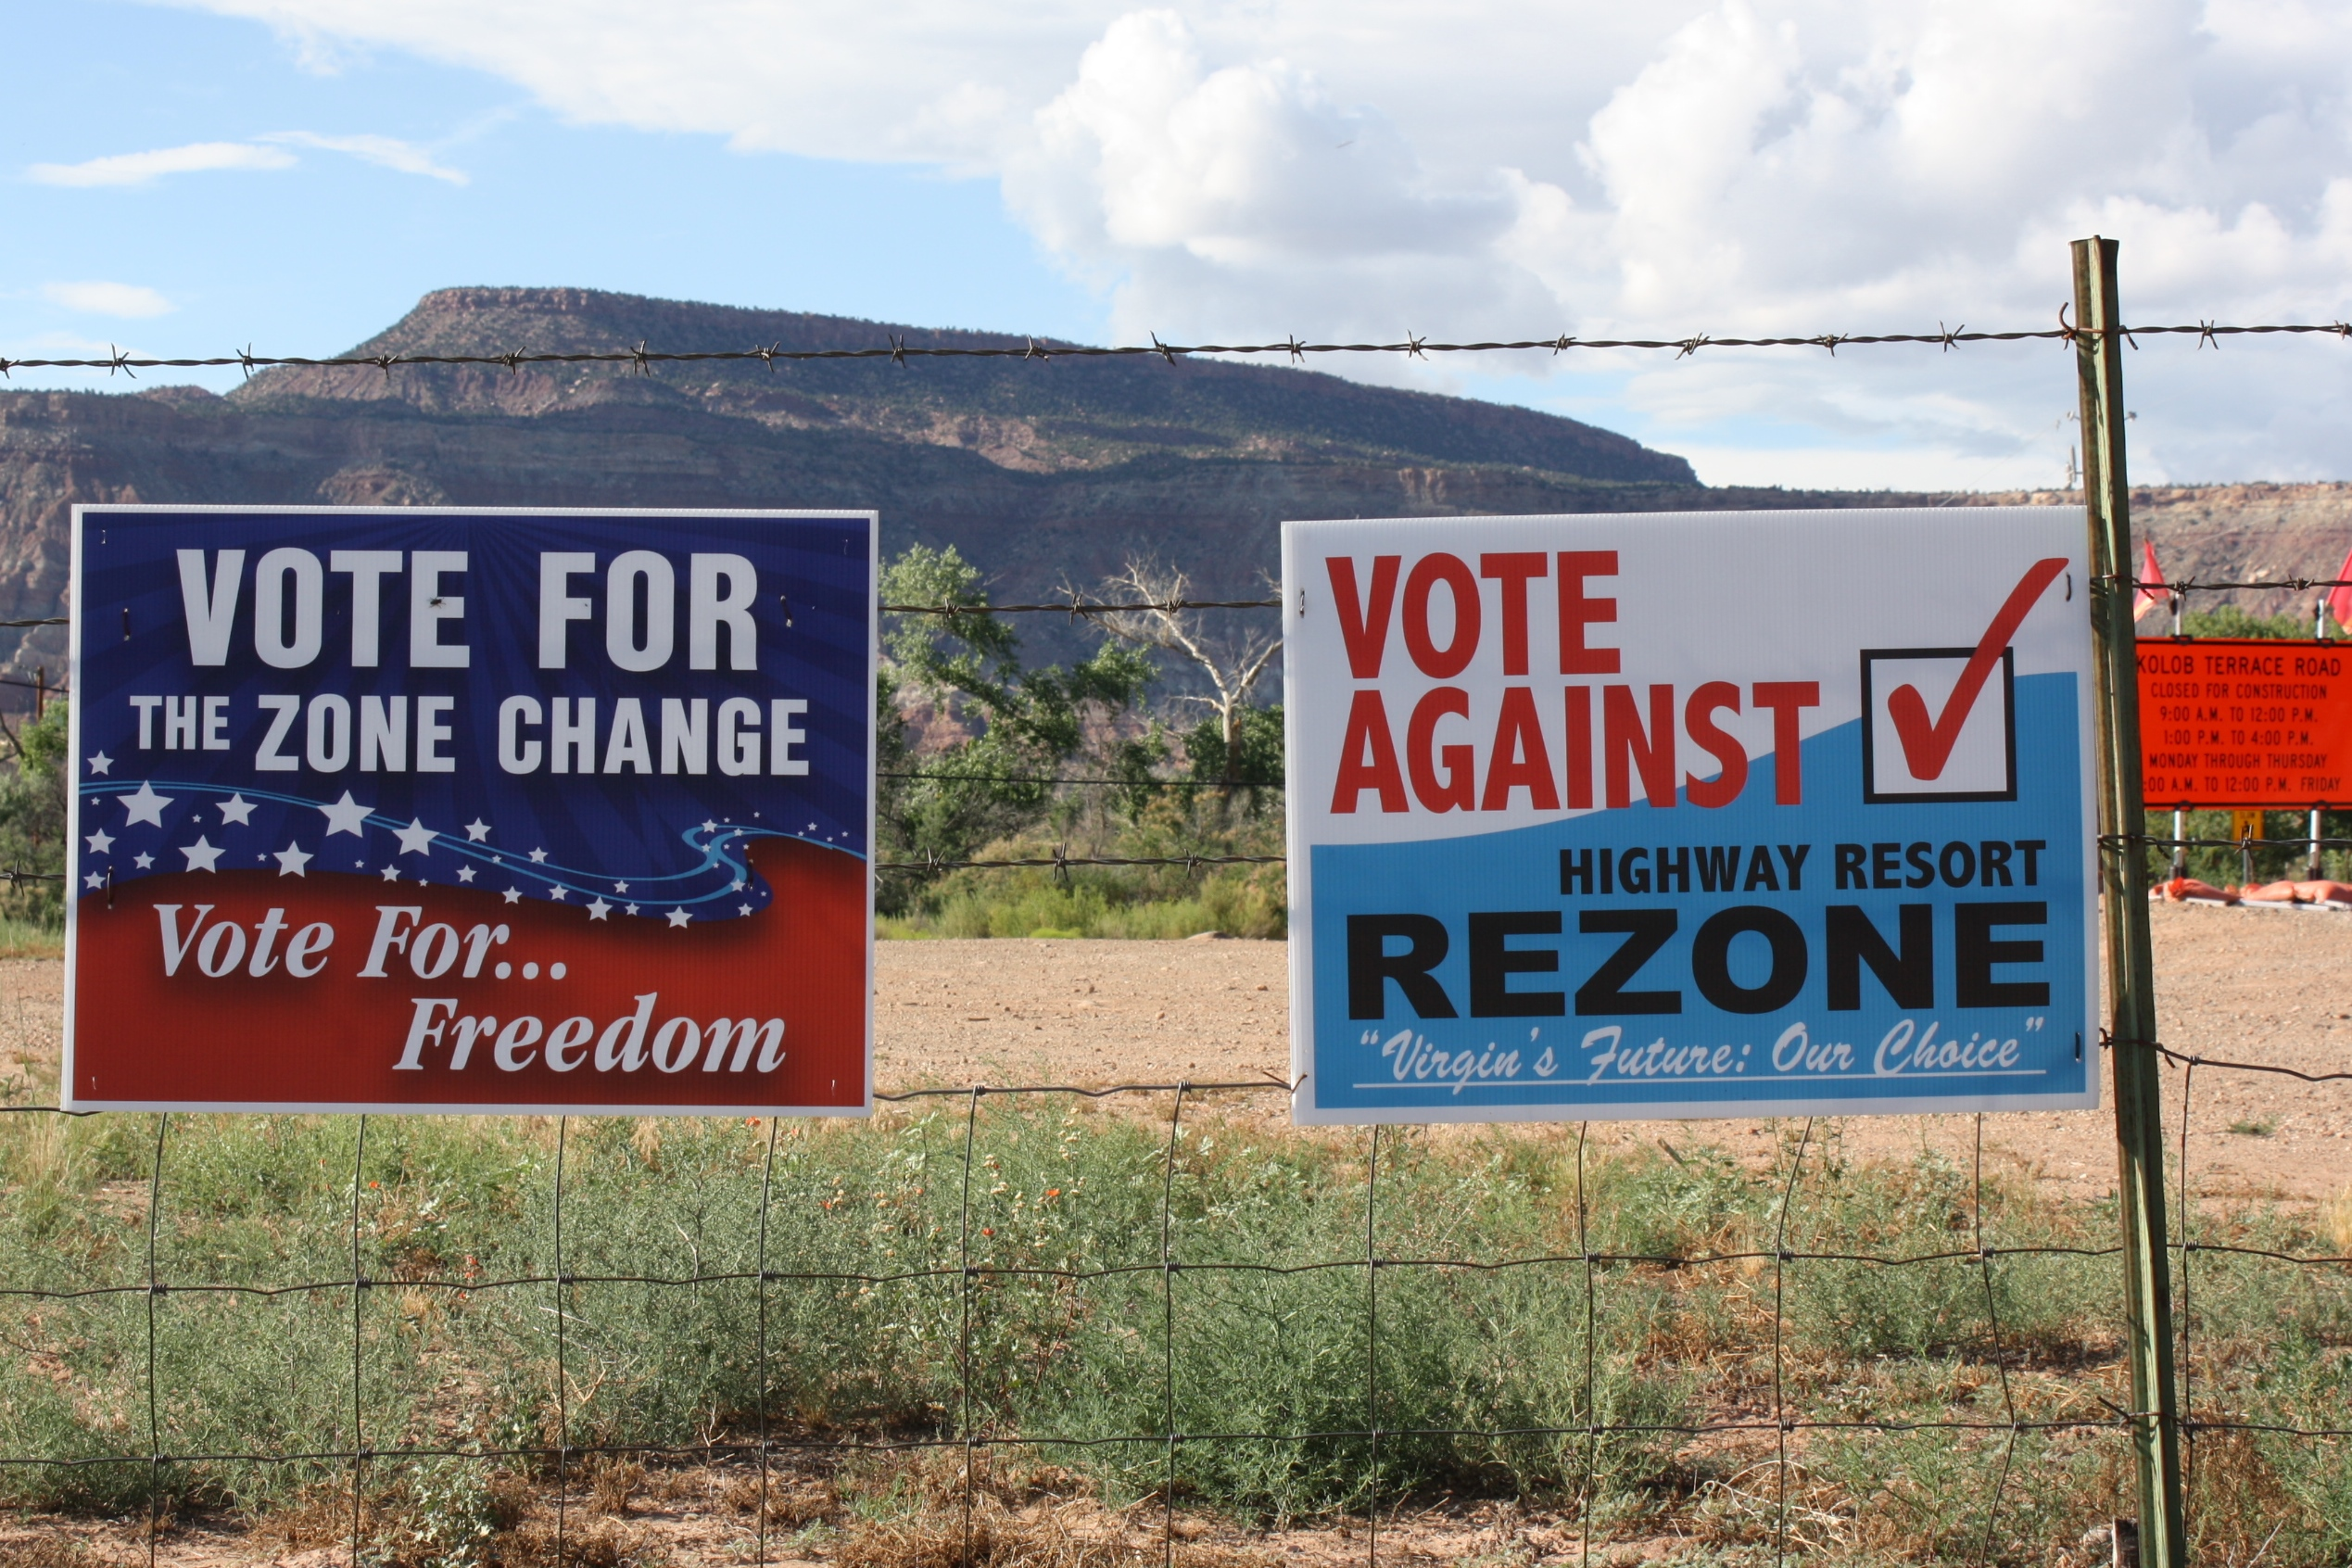 Two referendum signs urging Virgin residents to vote on the June 23 referendum on a fence next to the turnoff of the Kolob Terrace Road, Virgin, Utah,  June 11, 2015   Reuben Wadsworth, St. George News